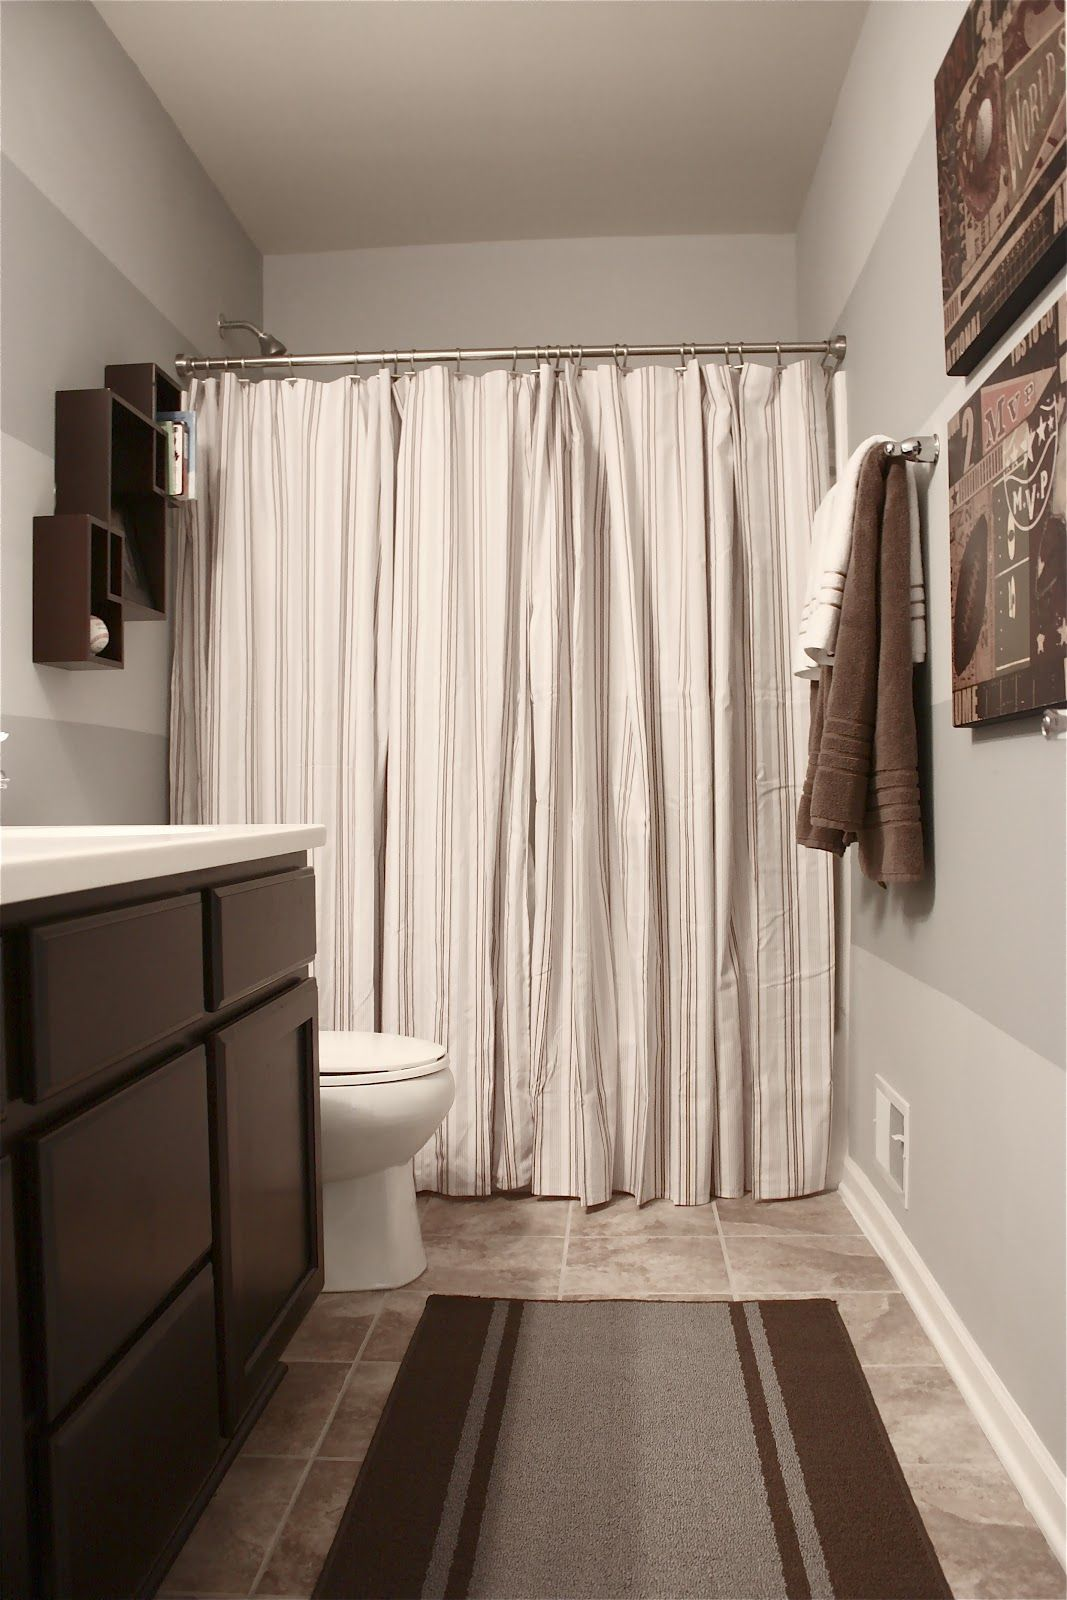 Img 2078 Jpg 1 067 1 600 Pixels Brown Shower Curtain Two Shower